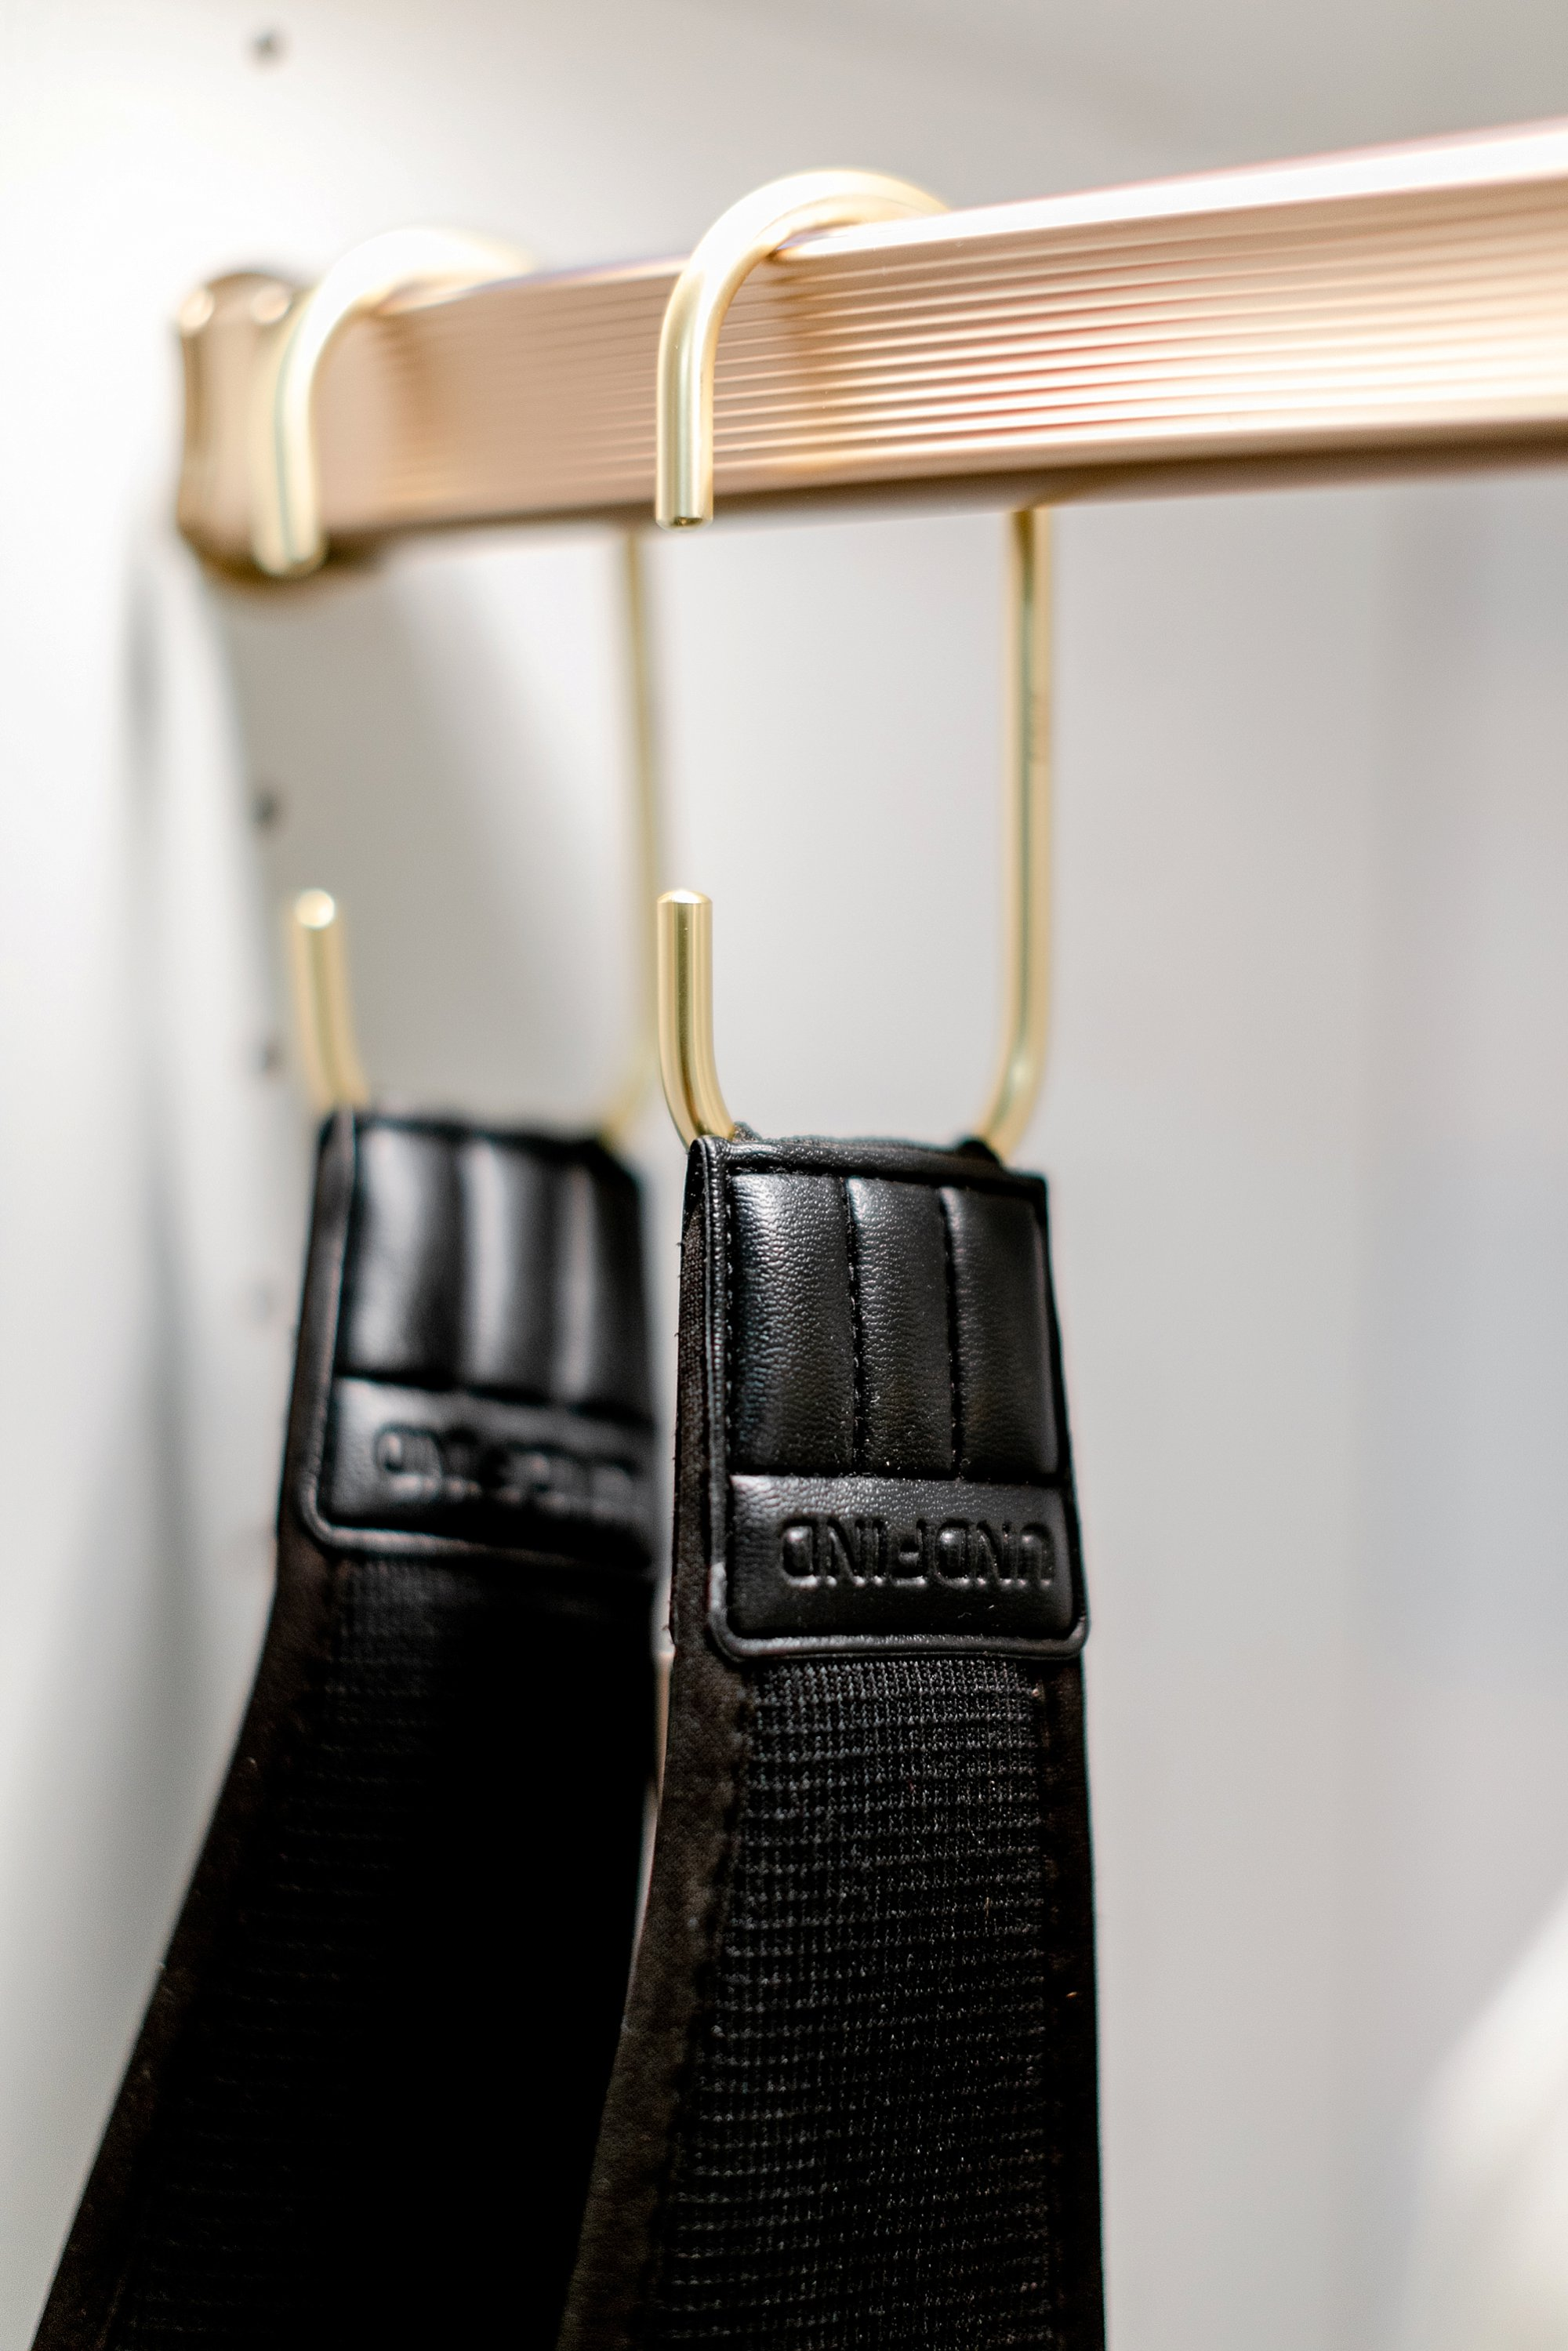 c hooks for handbags in office closet to hang camera bags: final reveal of office closet reveal belonging to photographer blogger Diana Elizabeth in phoenix arizona. created by California closets and with removable buffalo check wallpaper #office #closet #wallpaper #organization #lensorganization #lensdrawer